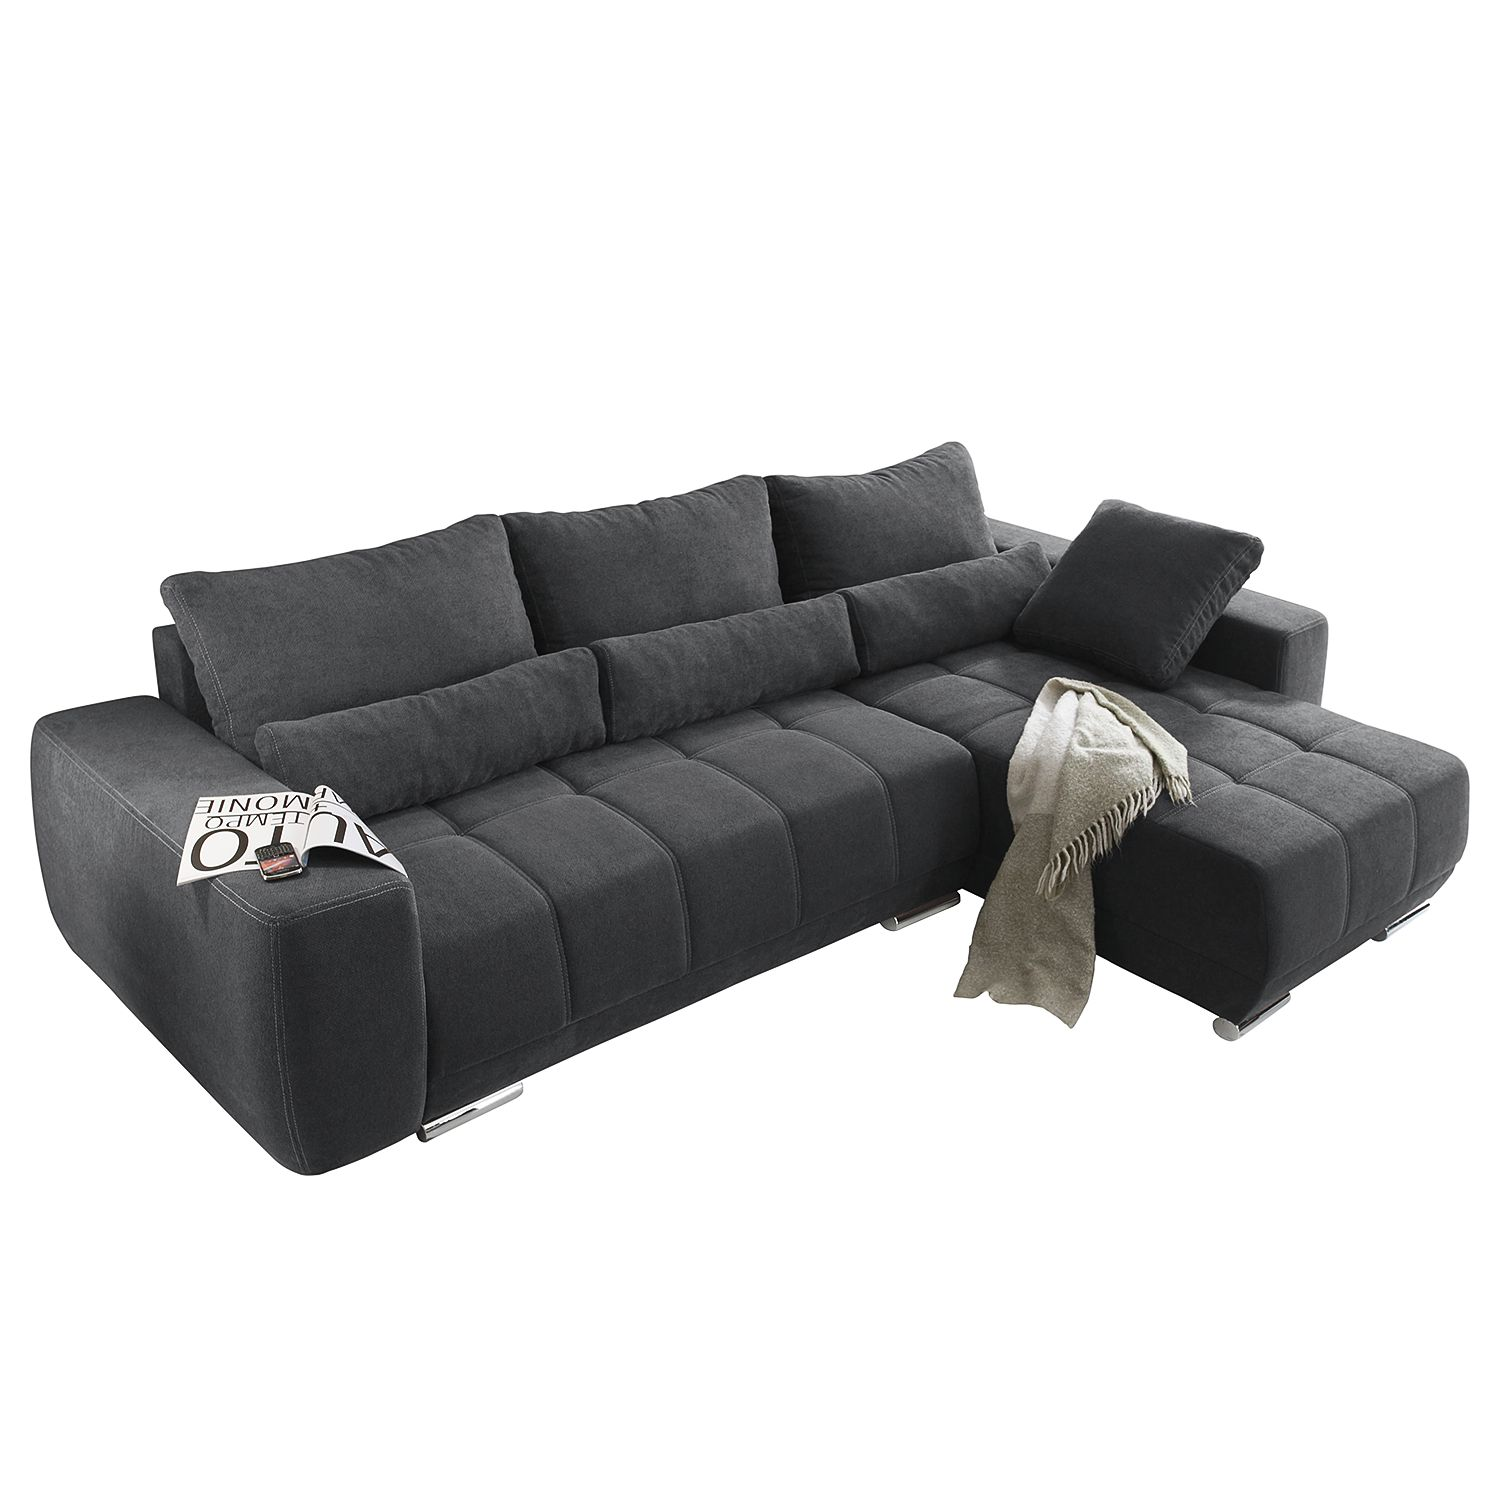 ecksofa galilea mit schlaffunktion beidseitig montierbar microfaser dunkelgrau fredriks. Black Bedroom Furniture Sets. Home Design Ideas